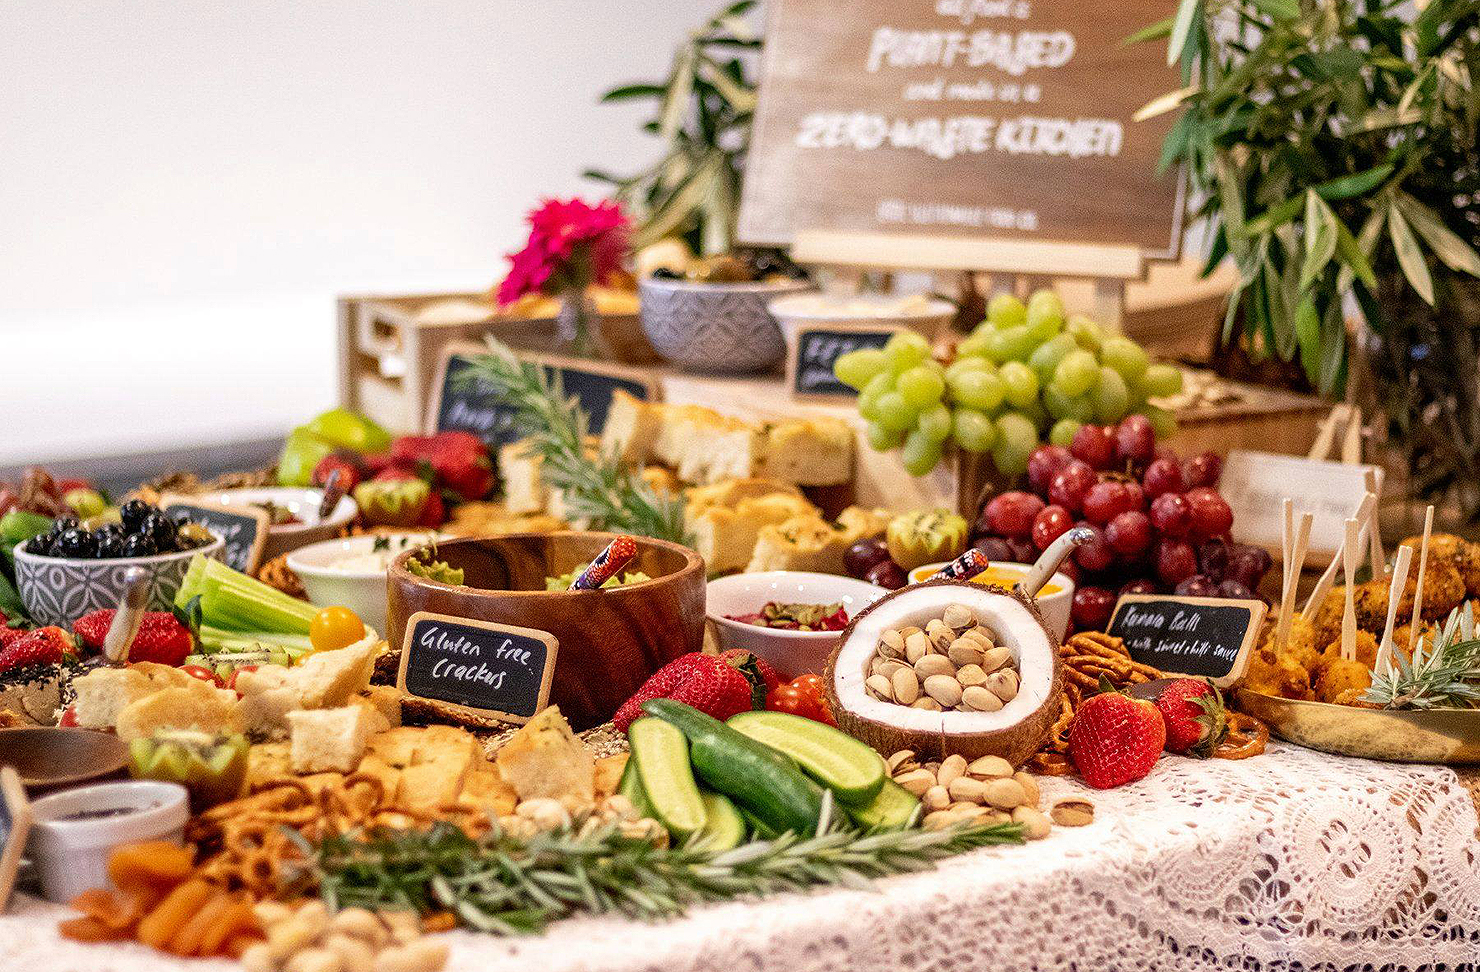 A platter from the Sustainable Food co company showing all sorts of goodies waiting to be devoured.